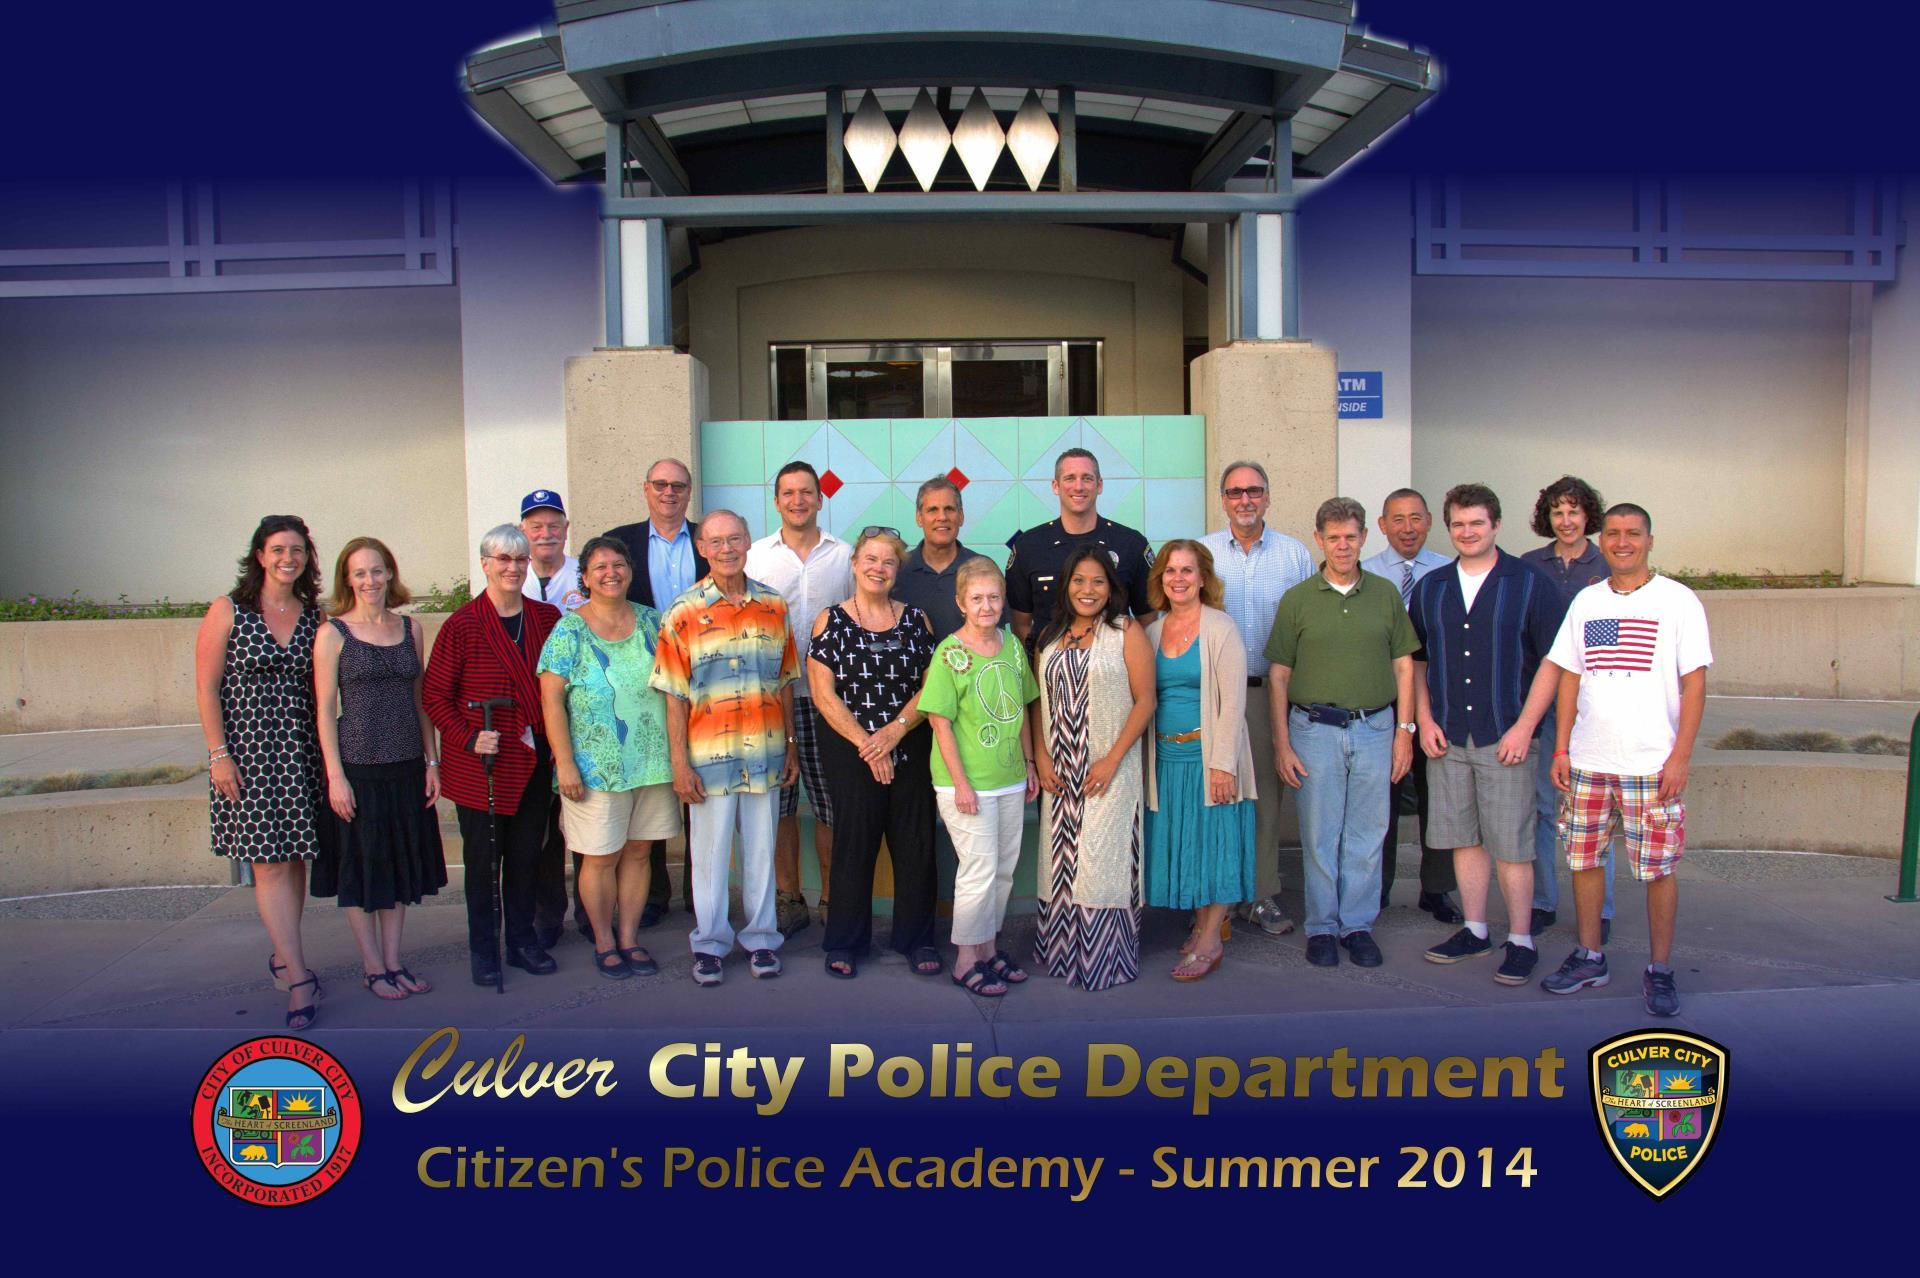 Summer 2014 Citizens Police Academy Participants